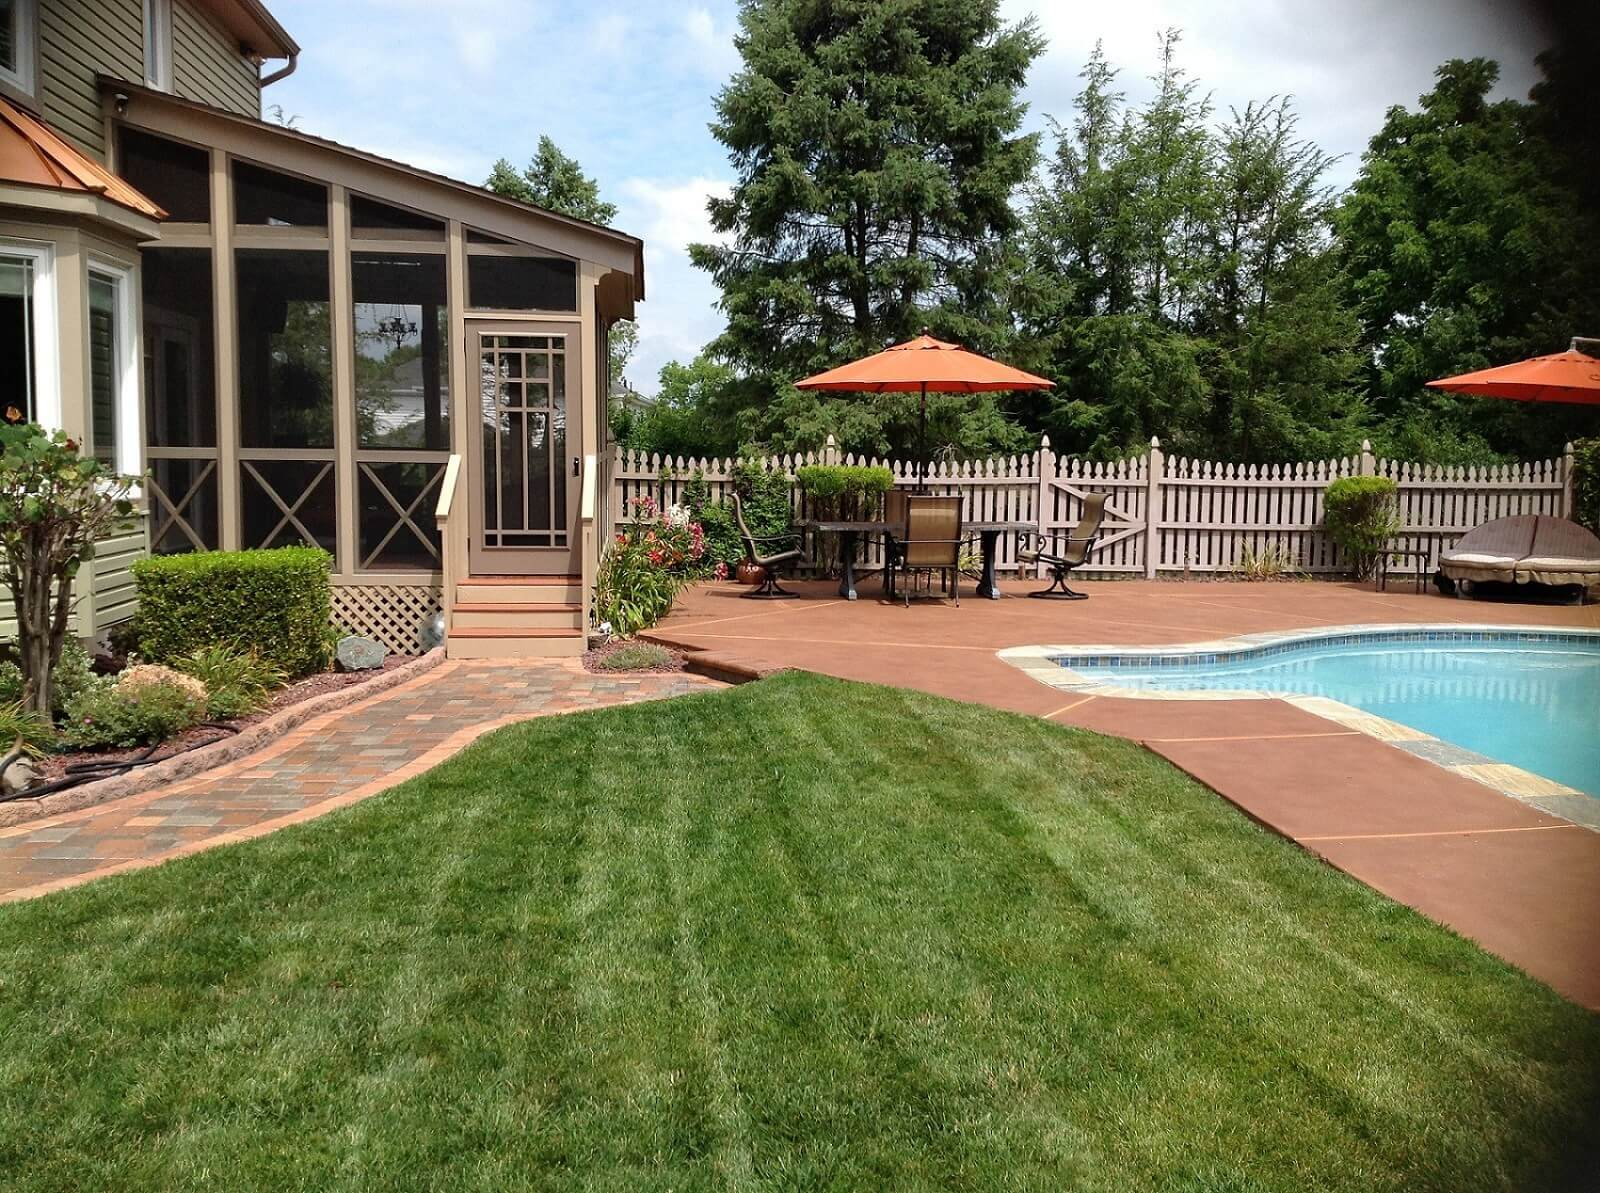 Design by project: Staining Concrete Pool Decks